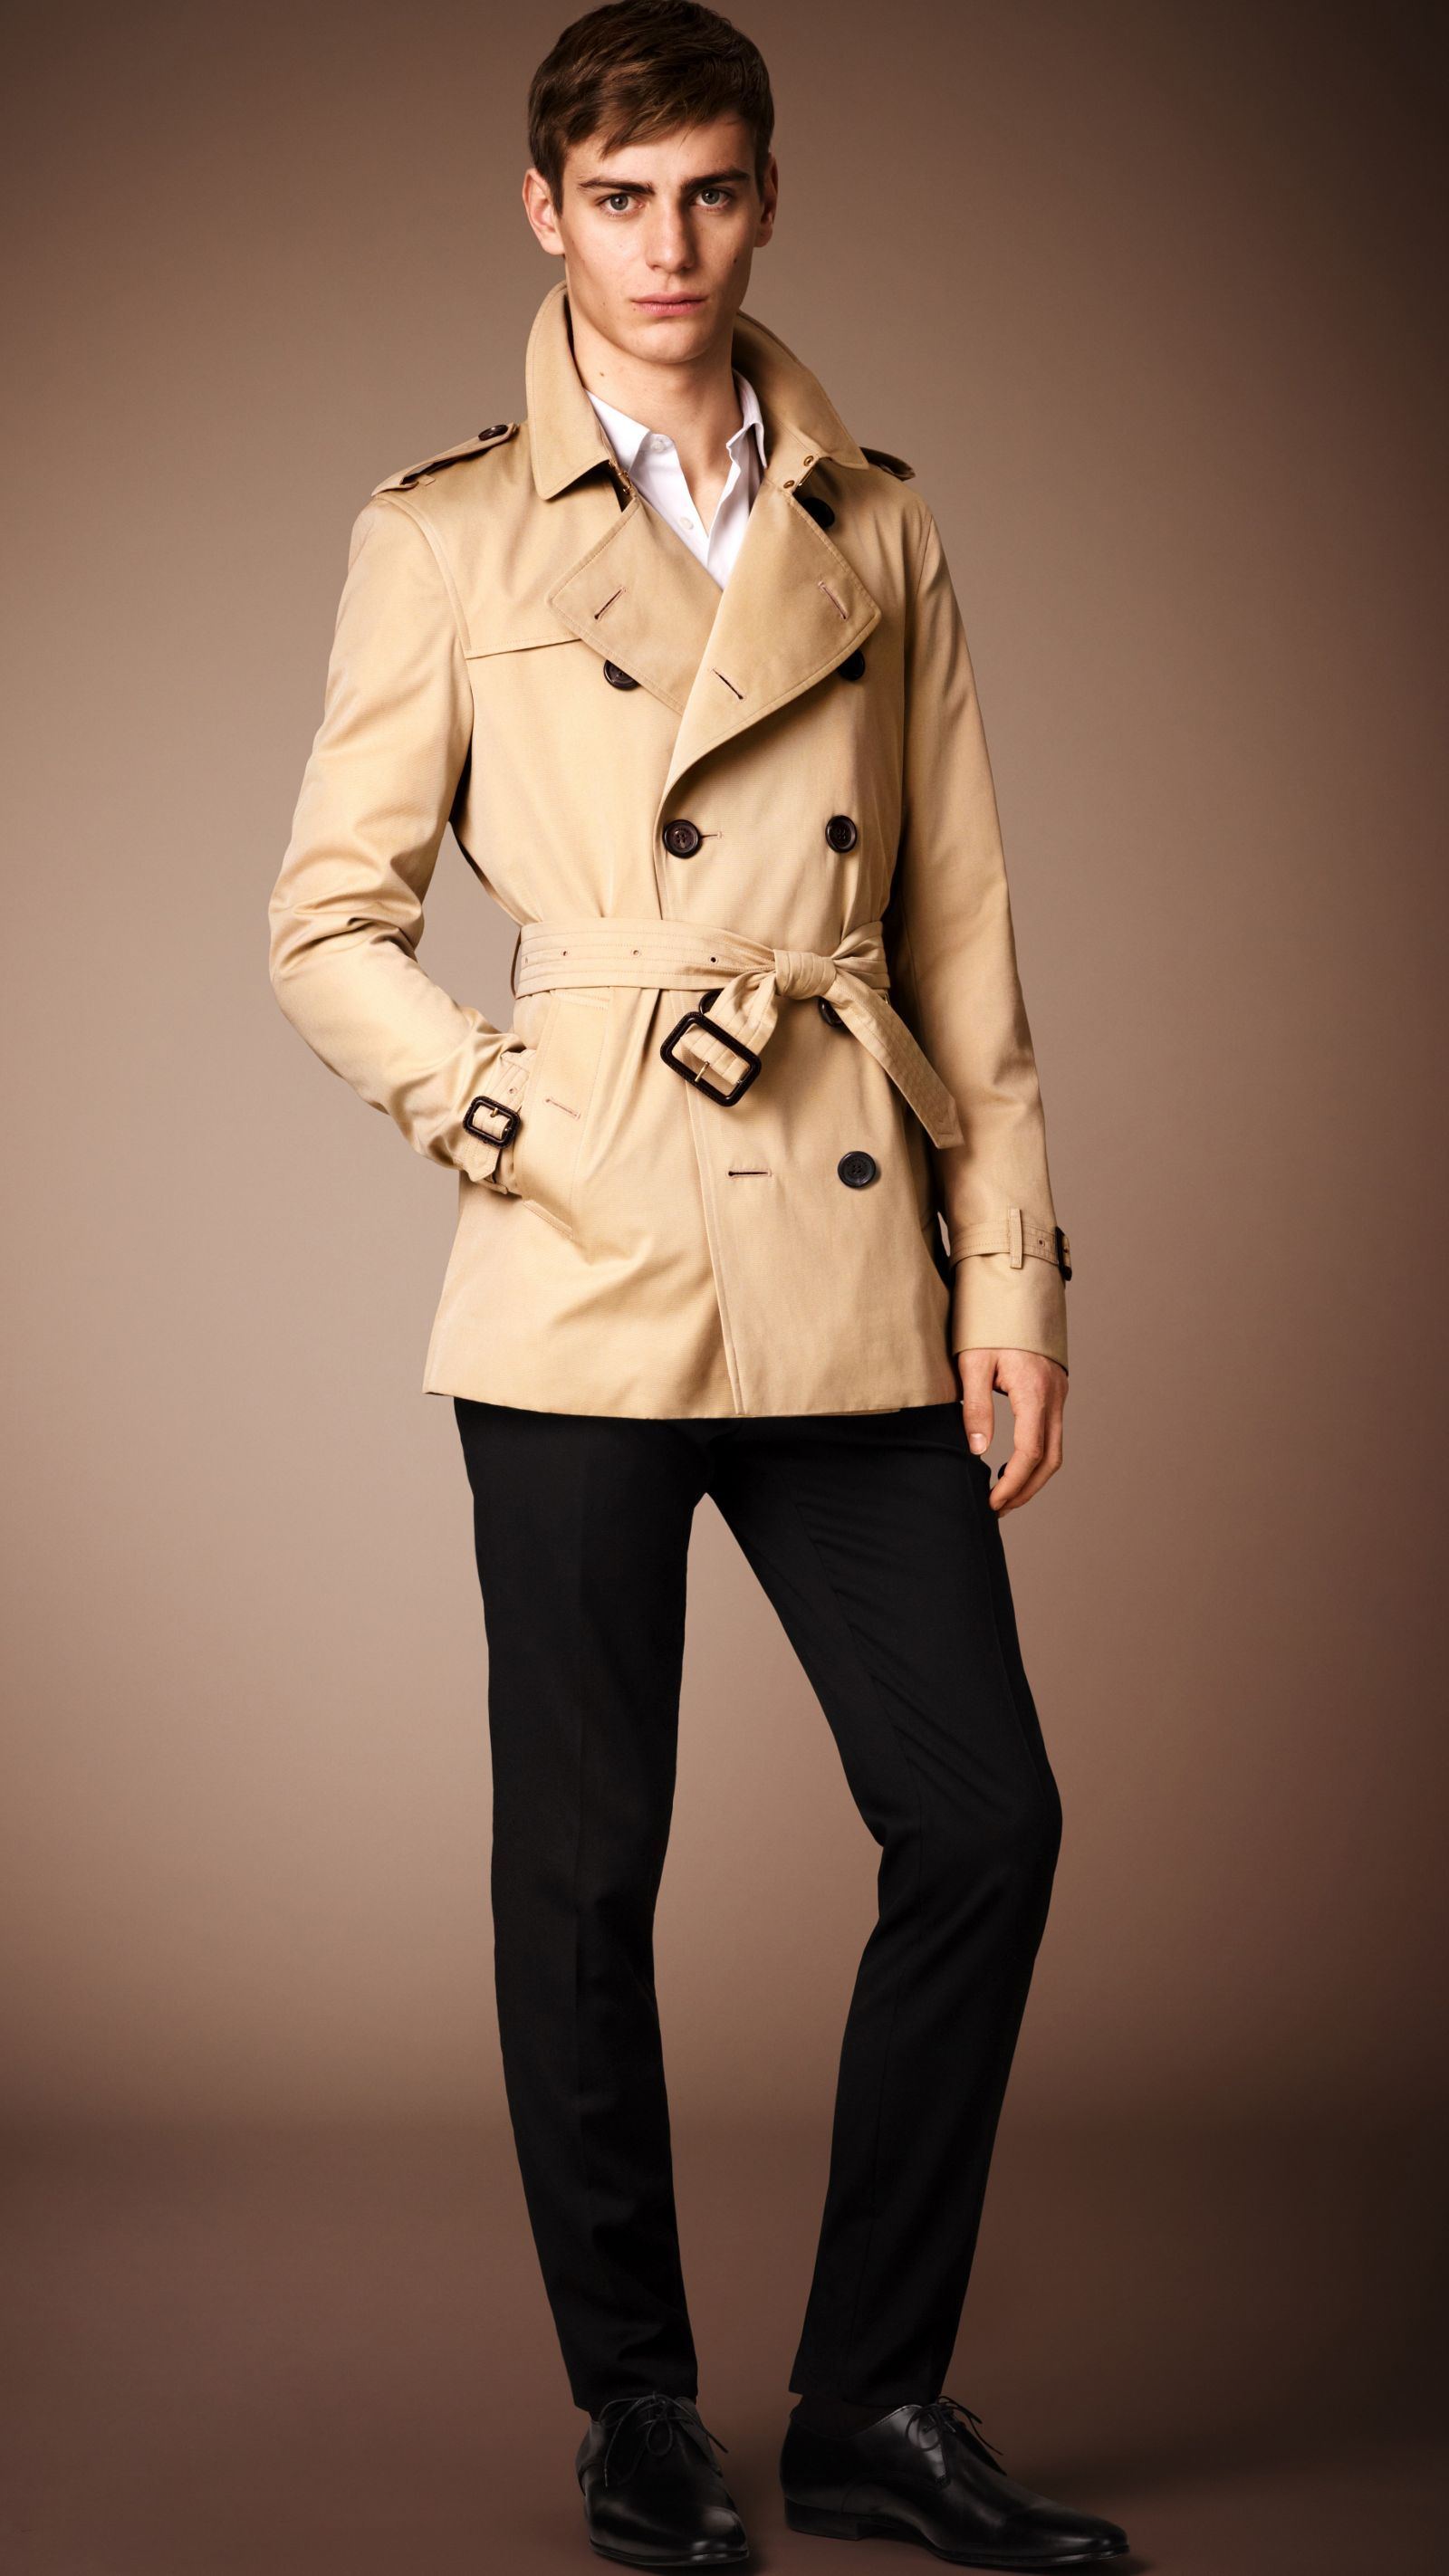 The Kensington - Short Heritage Trench Coat   Burberry   Burberry ... bb972a0ff9d